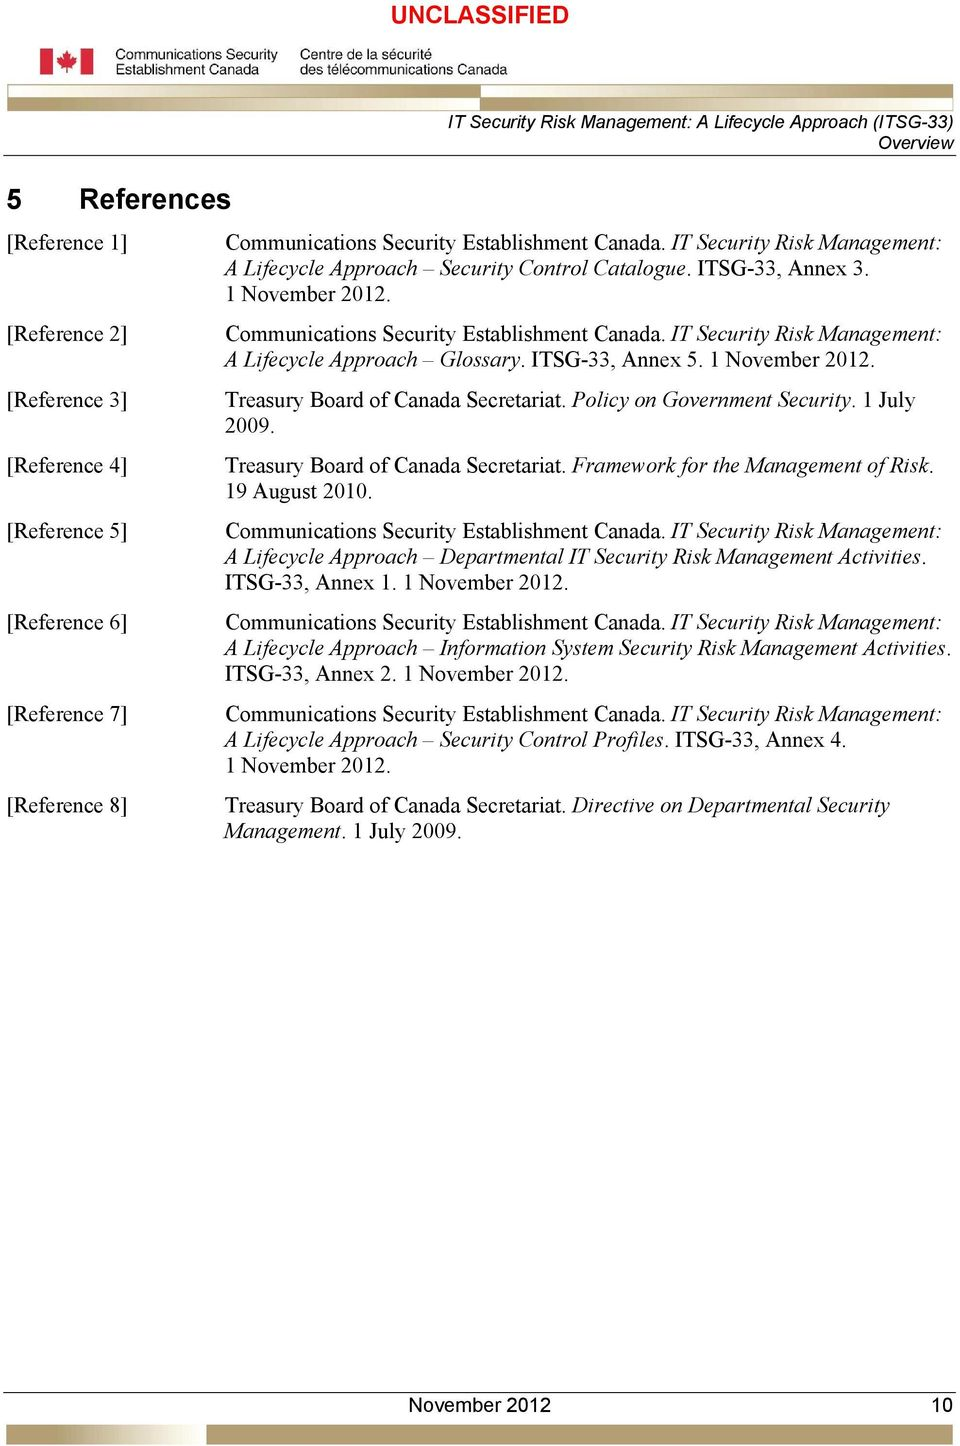 IT Security Risk Management: A Lifecycle Approach Glossary. ITSG-33, Annex 5. 1 November 2012. Treasury Board of Canada Secretariat. Policy on Government Security. 1 July 2009.